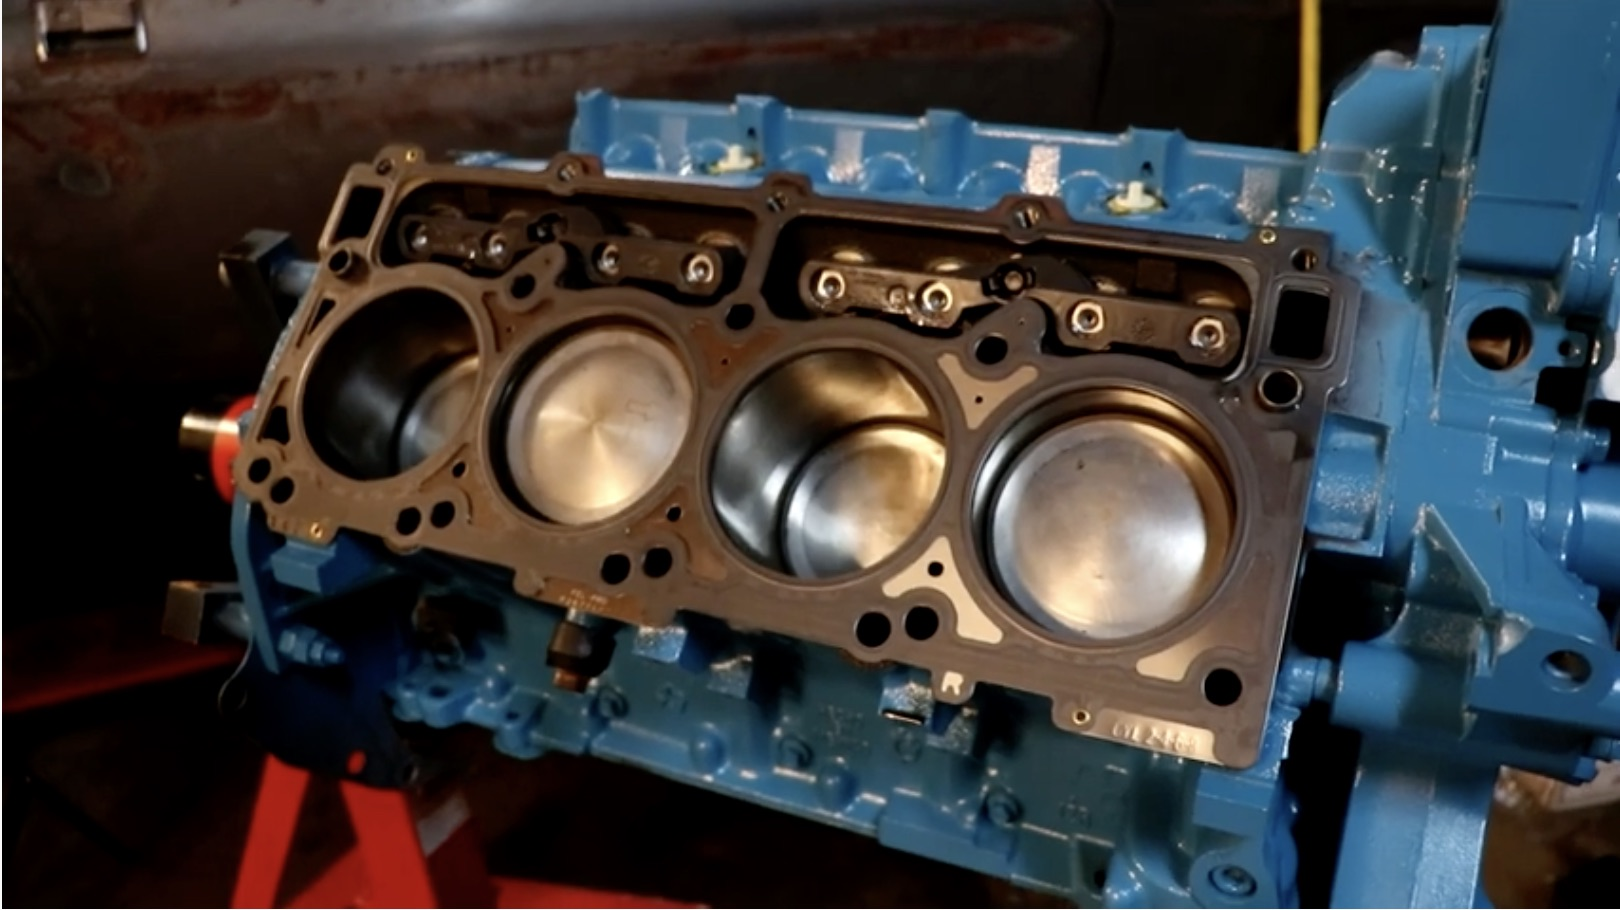 The Challenger Revival, Part 21: Finishing Off The 5.7L Hemi Rebuild For The E-Body!